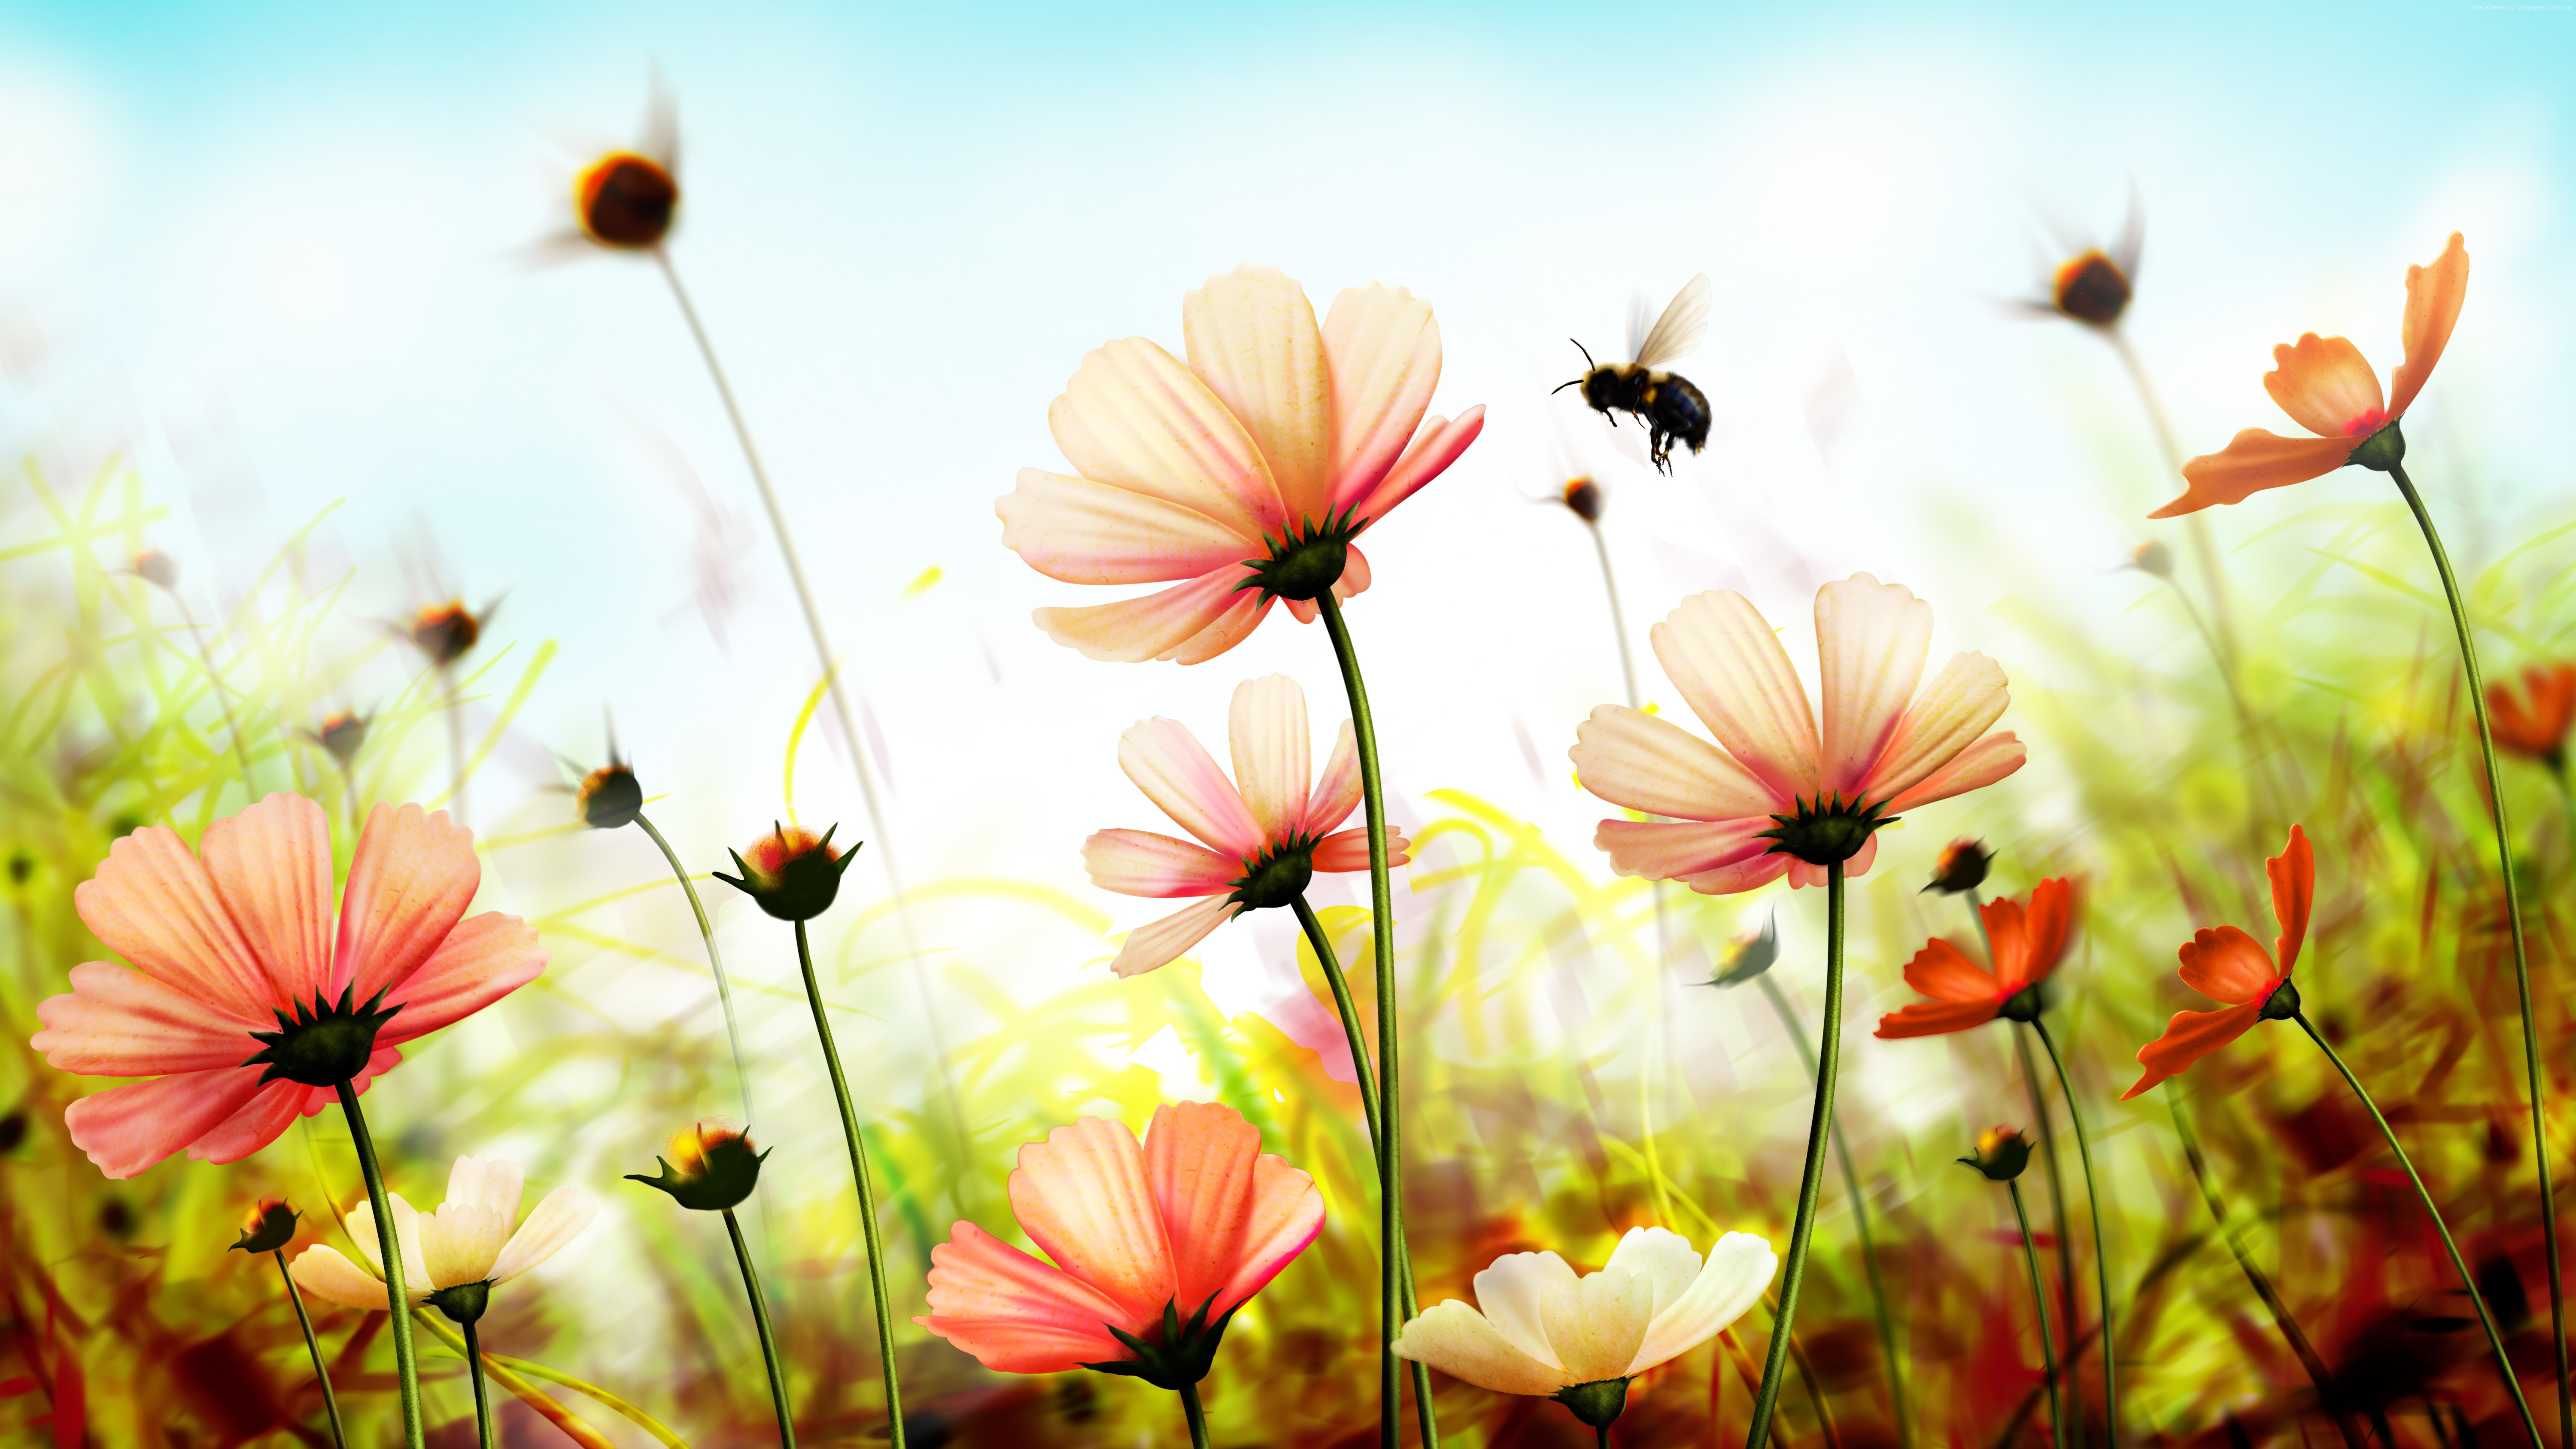 Pink Cosmos and Bumblebee k Retina Ultra HD Wallpaper and